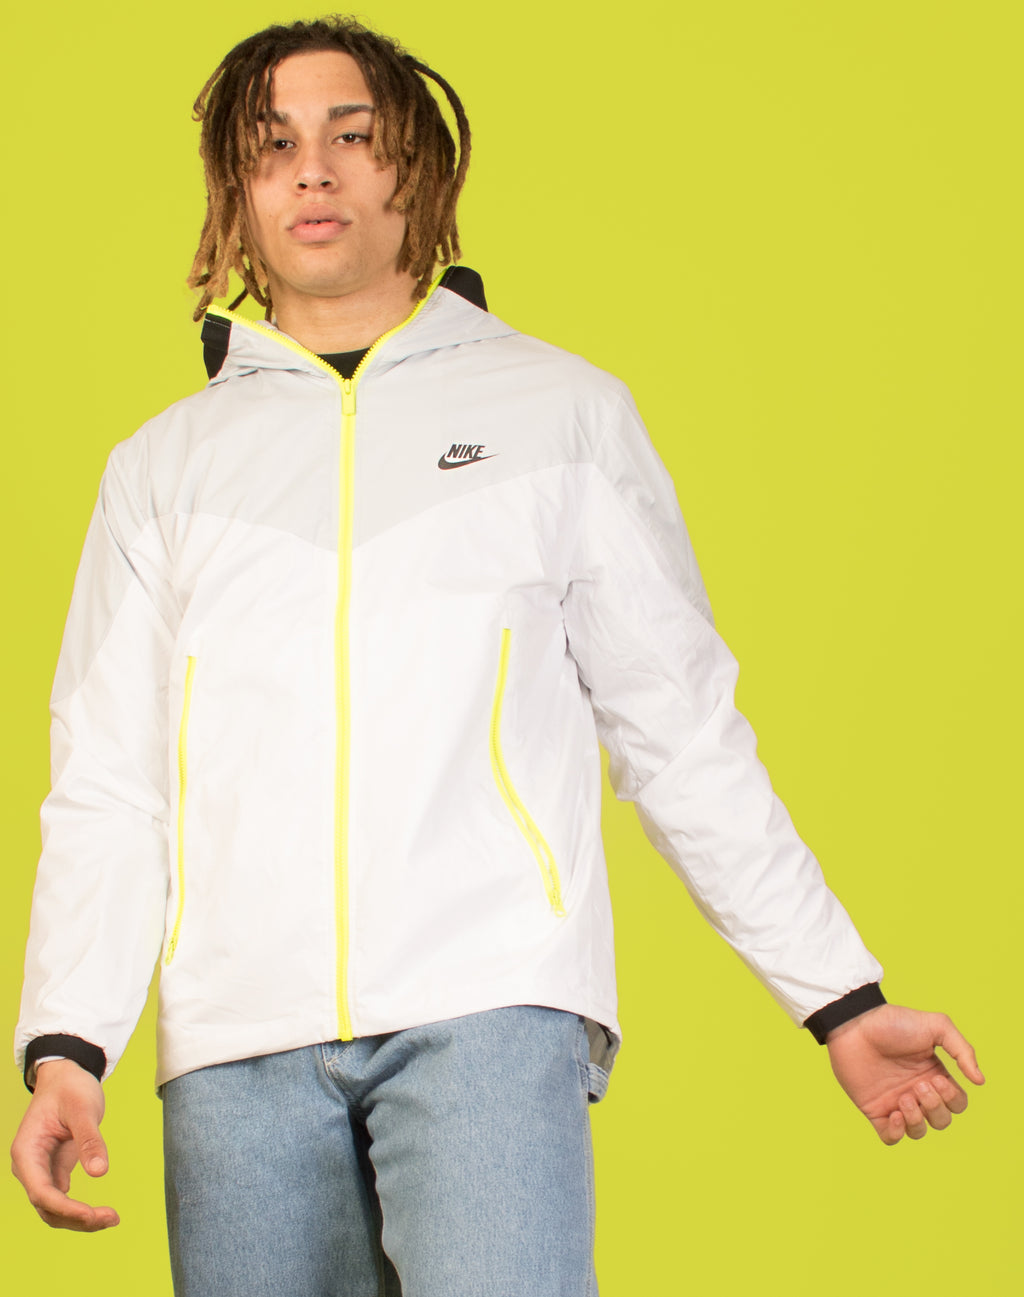 NIKE WHITE WATERPROOF JACKET